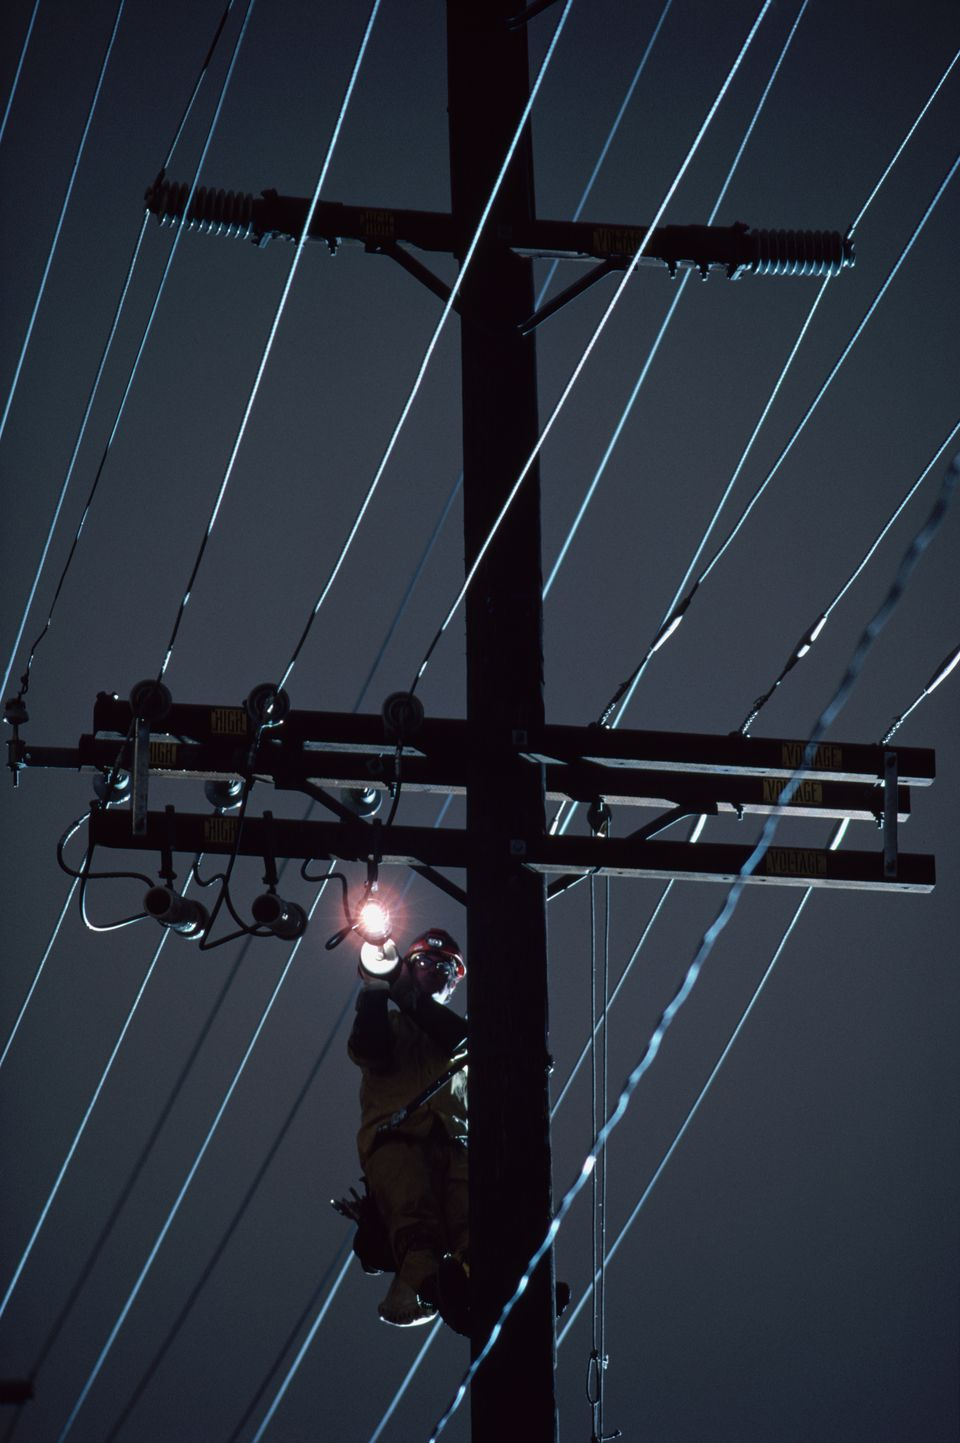 Lineman Throwing Switch on Utility Pole